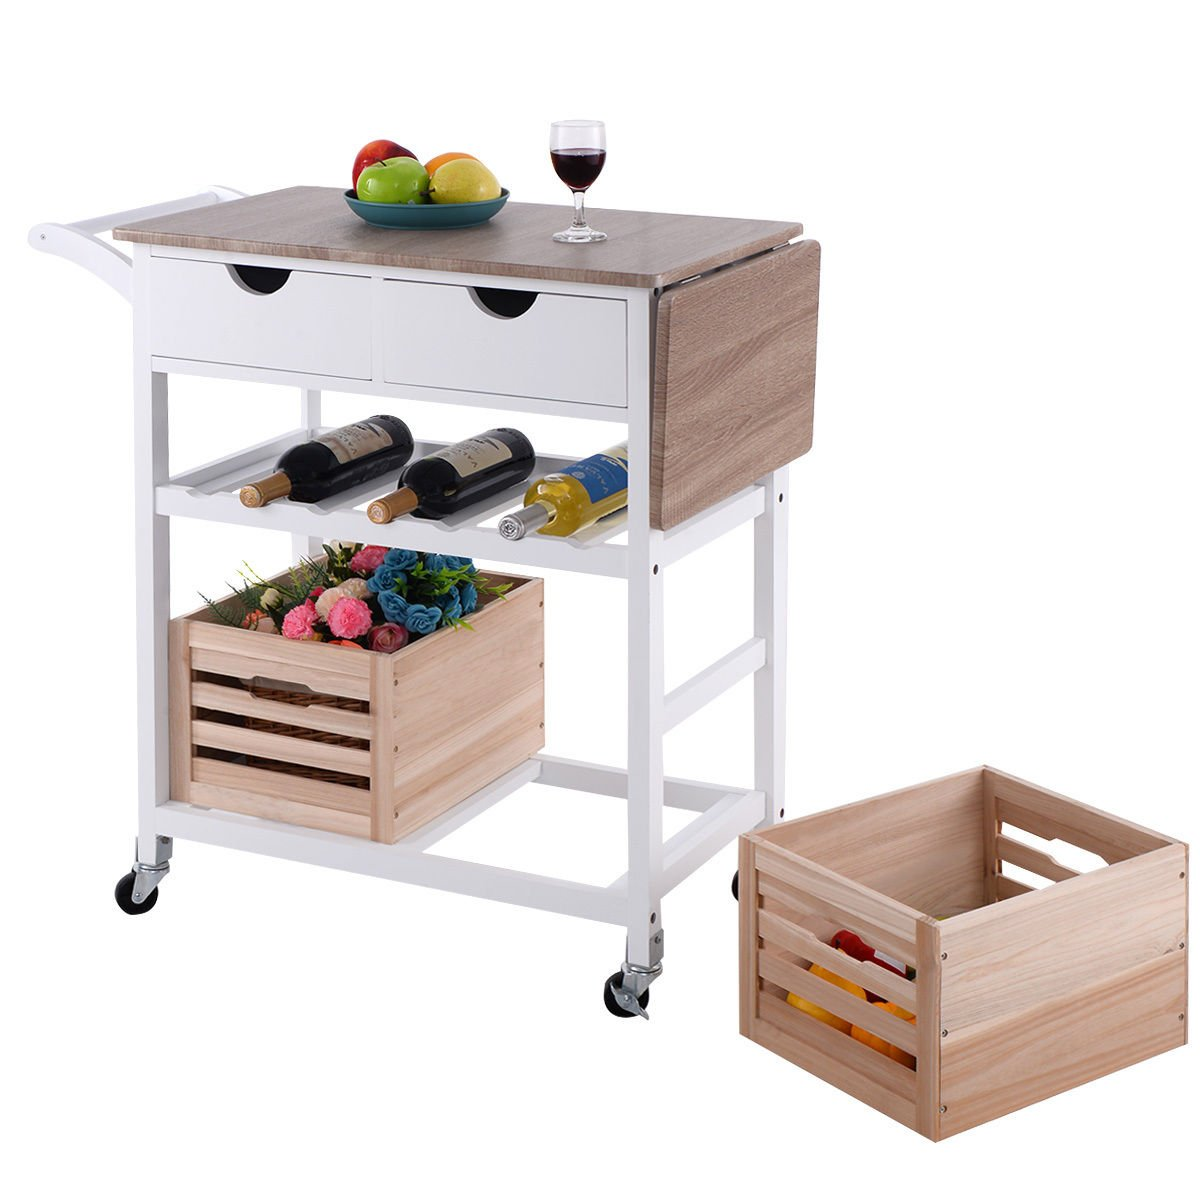 Costzon Kitchen Trolley Island Cart Dining Storage with Drawers Basket Wine Rack by Costzon (Image #2)